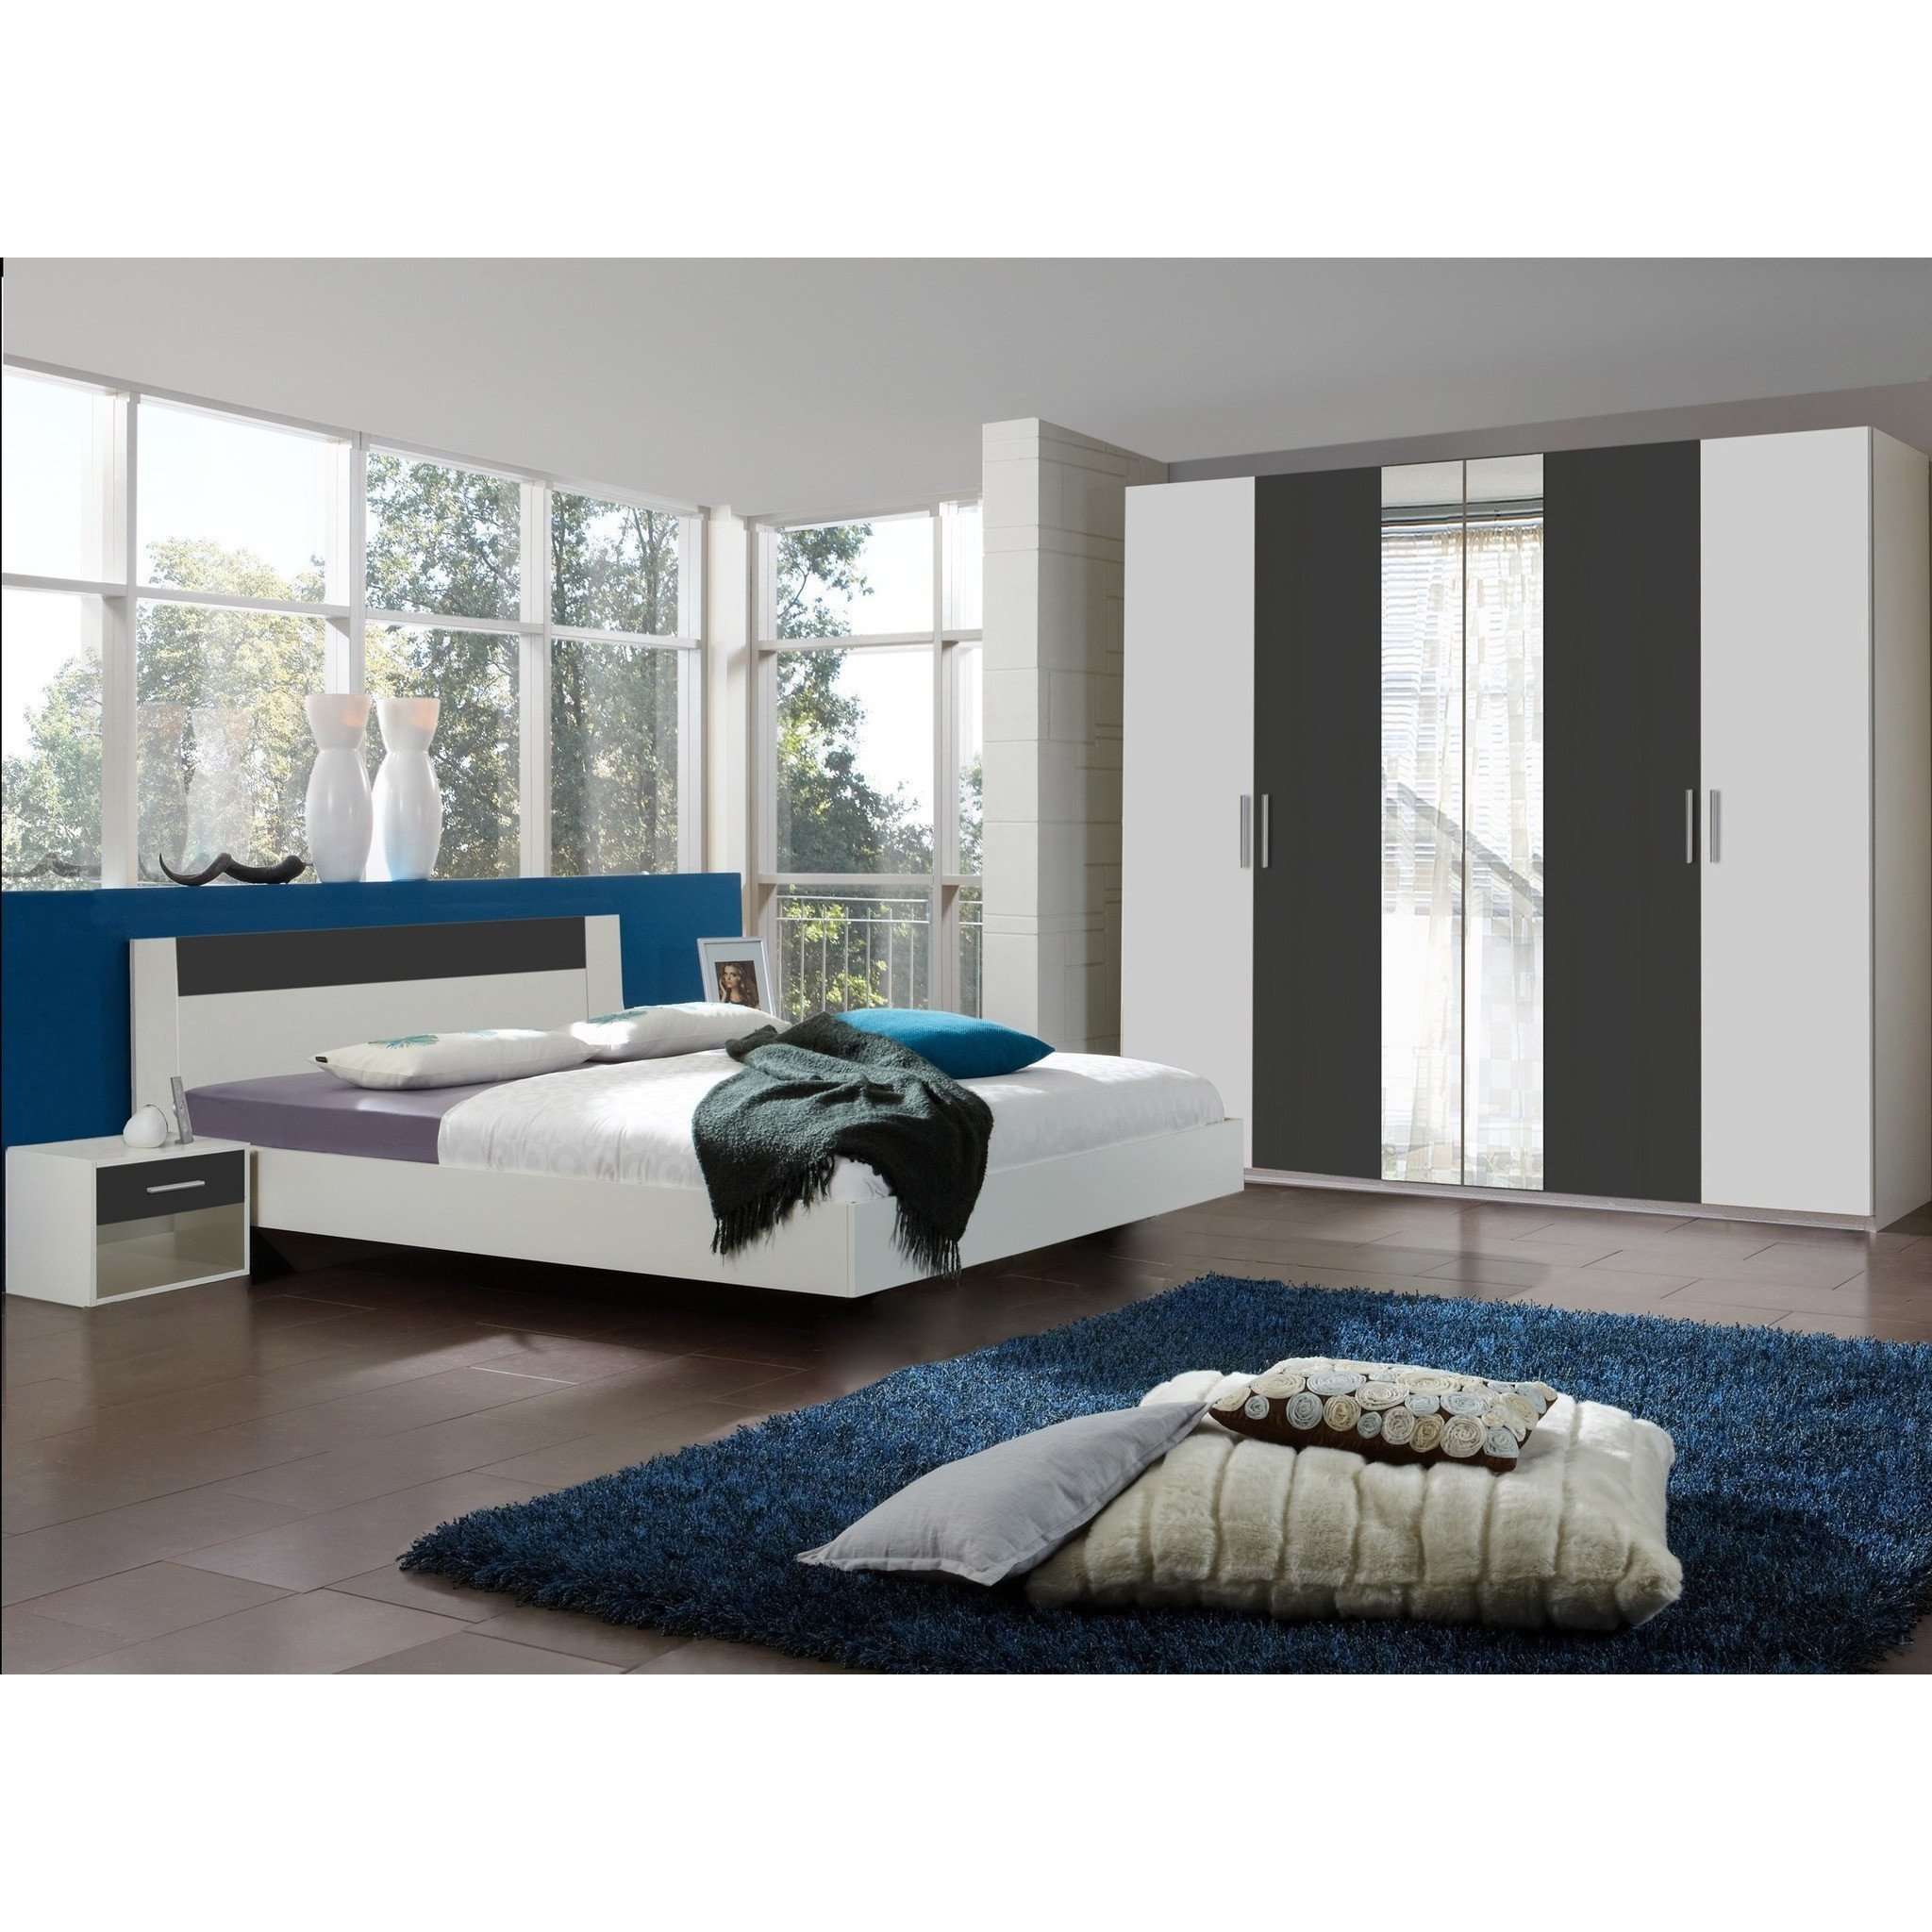 Best Qmax Liana Range German Made Bedroom Furniture White Anthracite – Freedom Homestore With Pictures